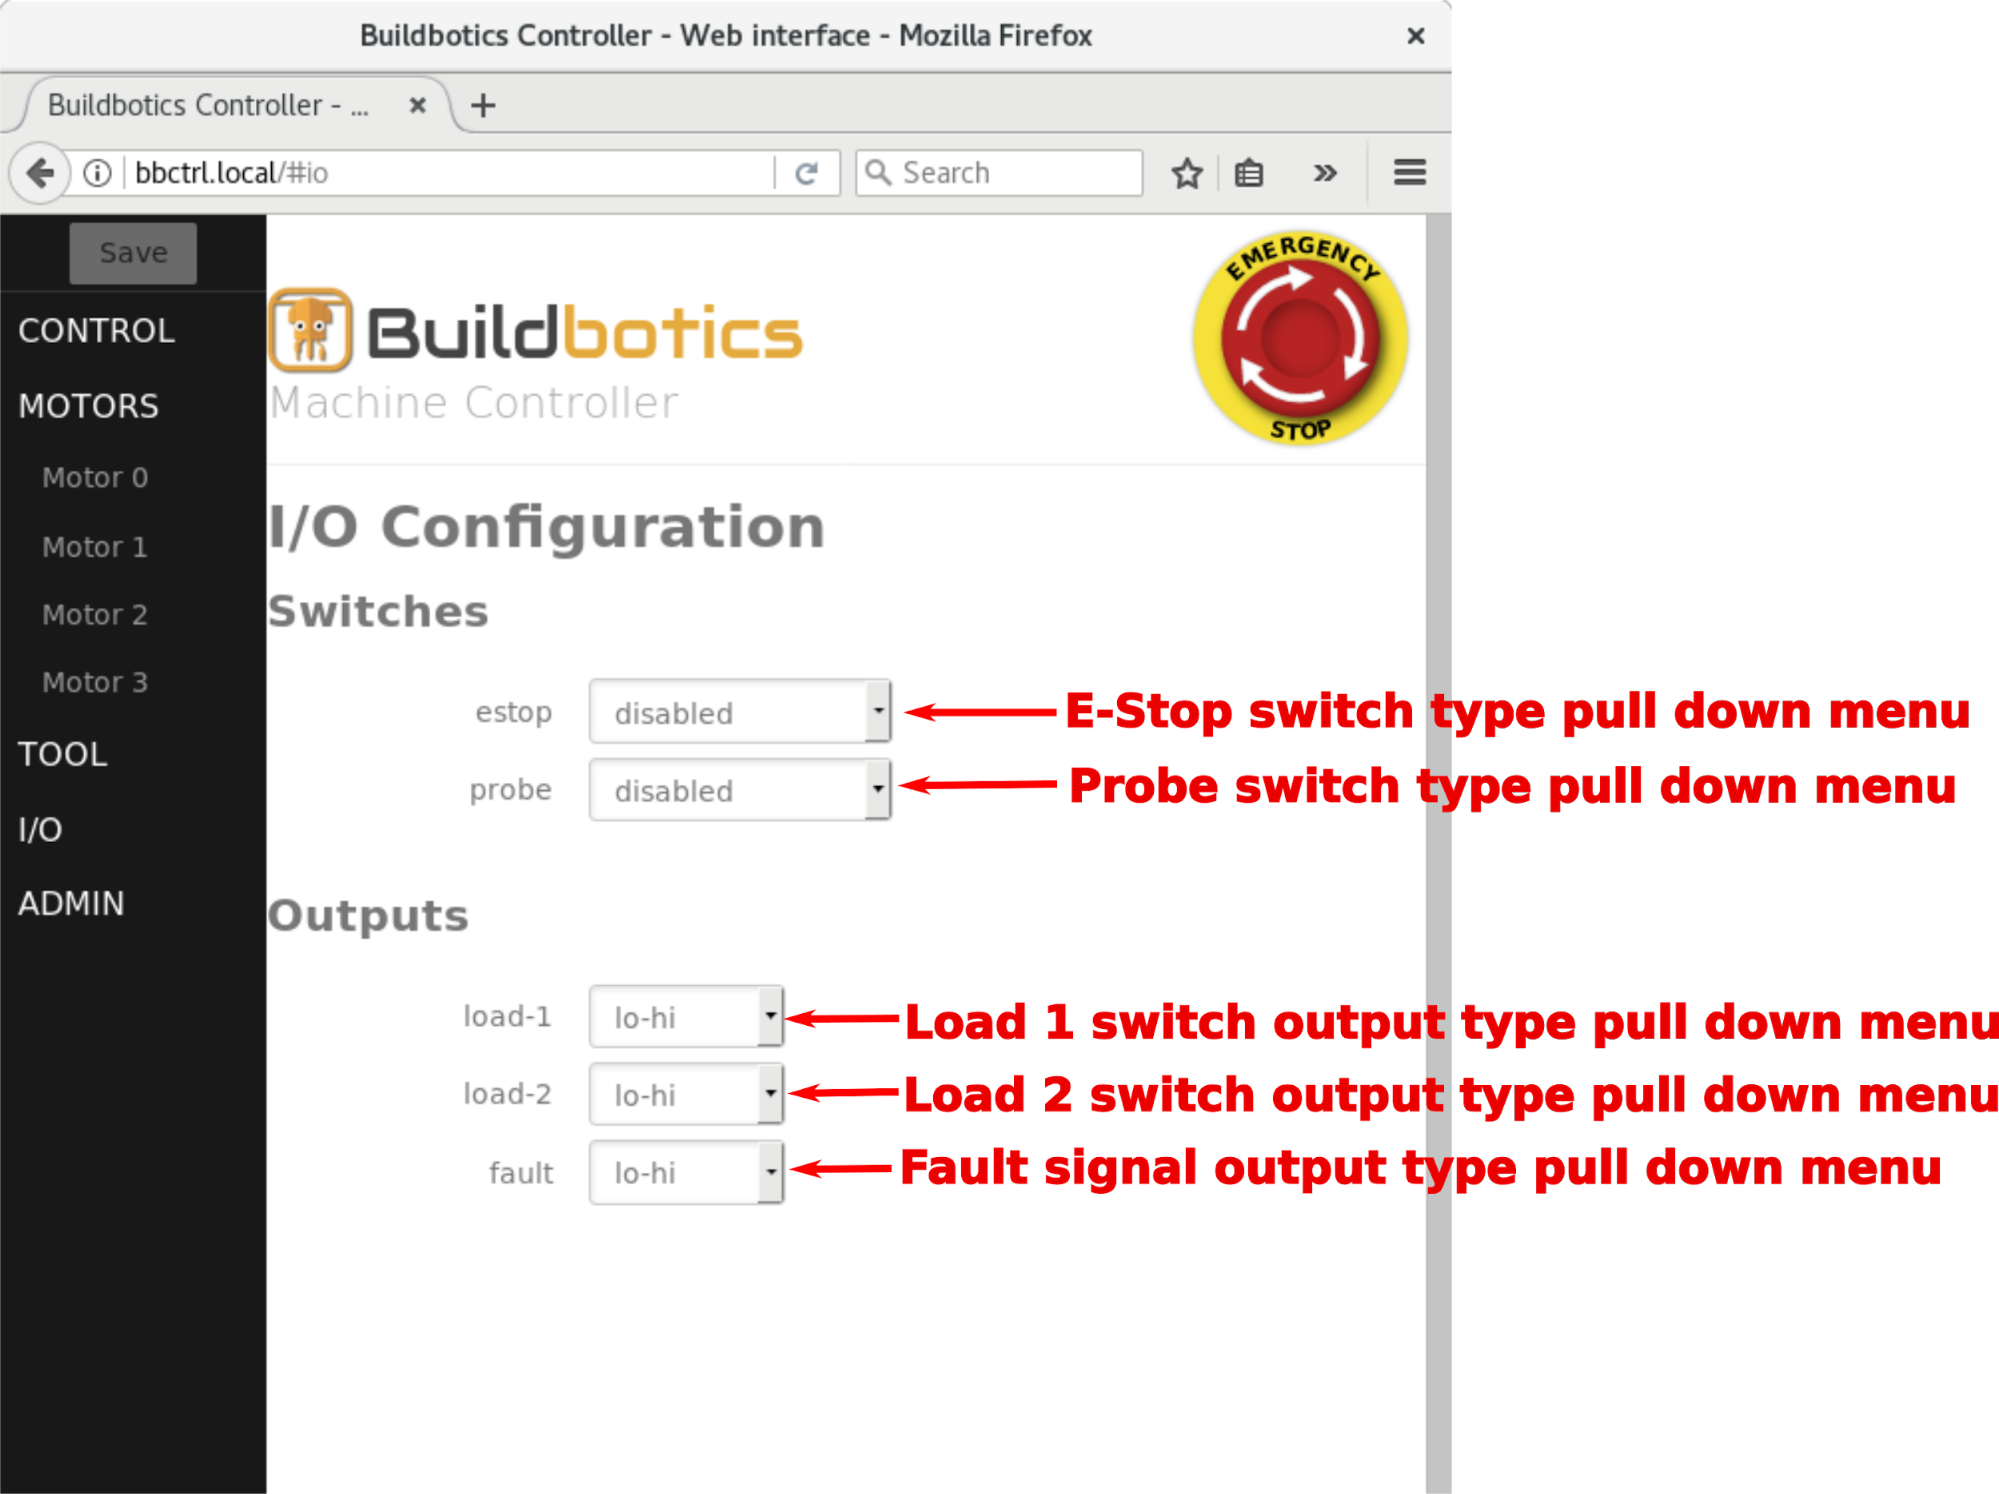 Connecting To The Buildbotics Controller Figure Shows Connections For Db25 Connectors Use Table Estop Pull Down Menu Specifies Type Of Switch Connected Pin On I O Connector Options Are